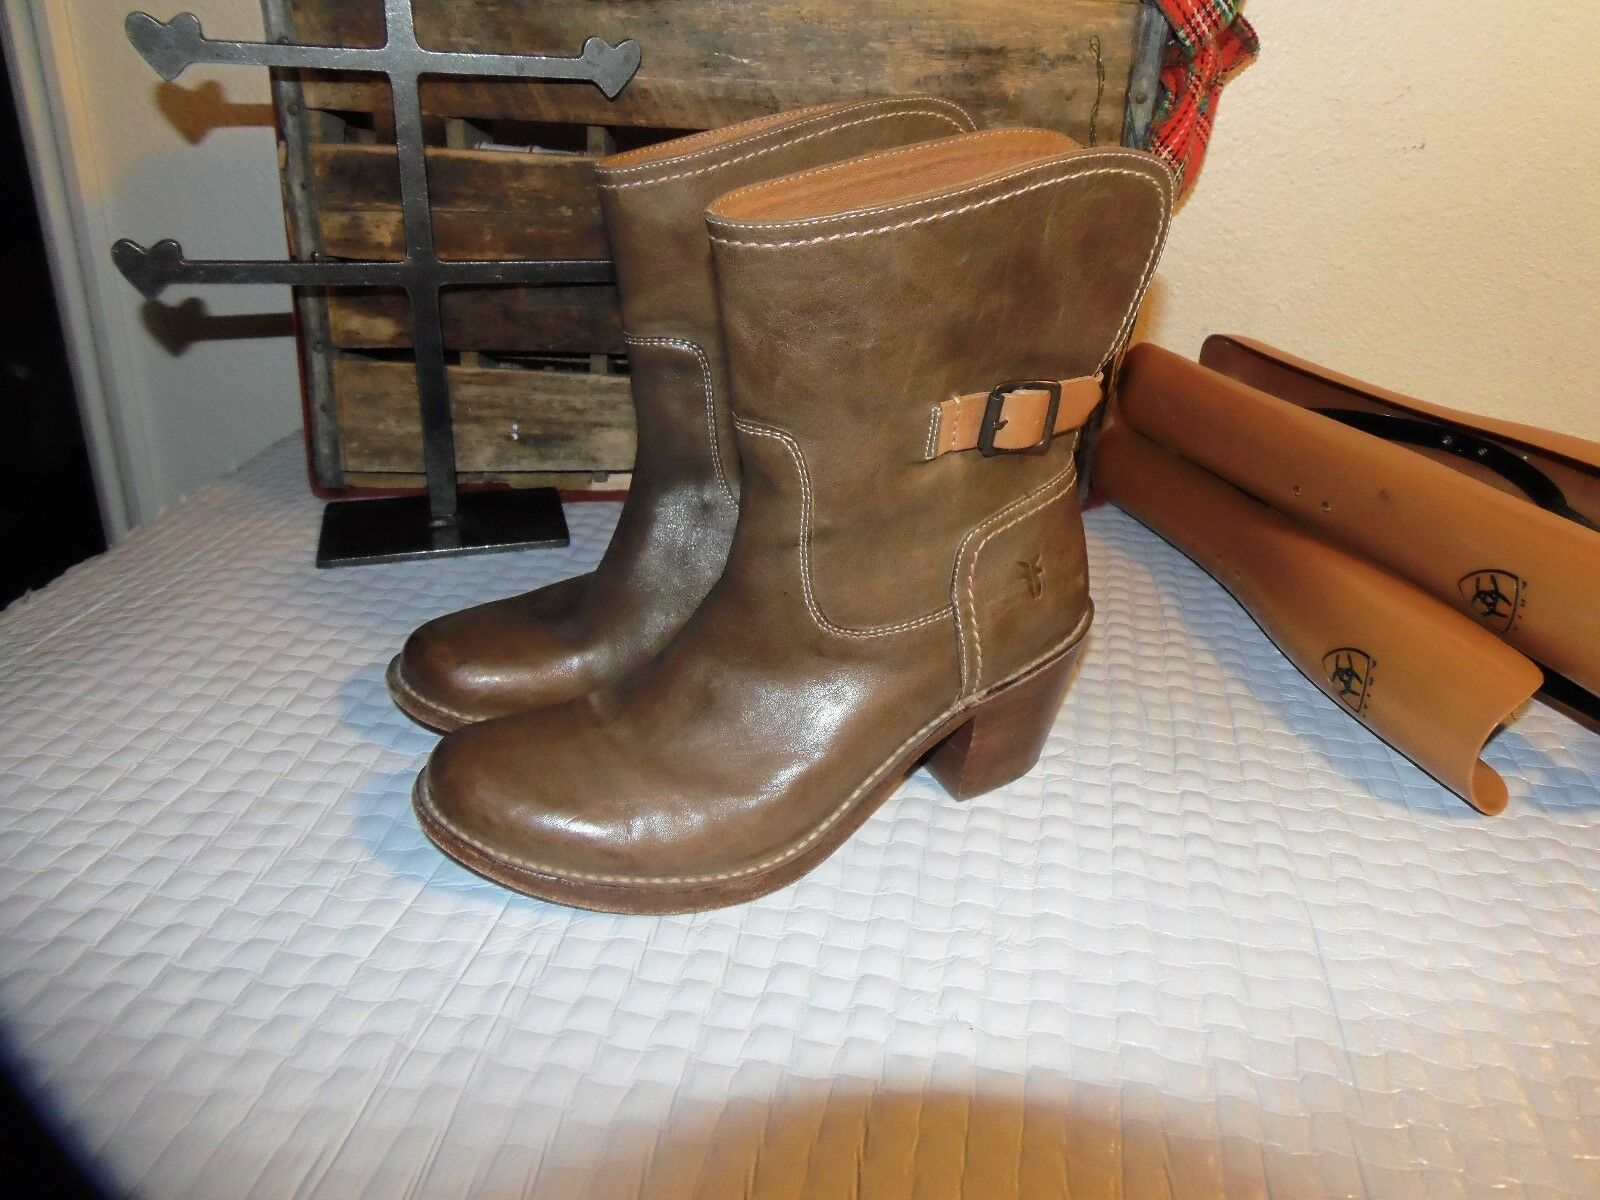 Frye boots 8.5 B FRYE leather BOOTS 8.5 B  FRYE boots ANKLE BOOTS 8.5 FRYES 8.5